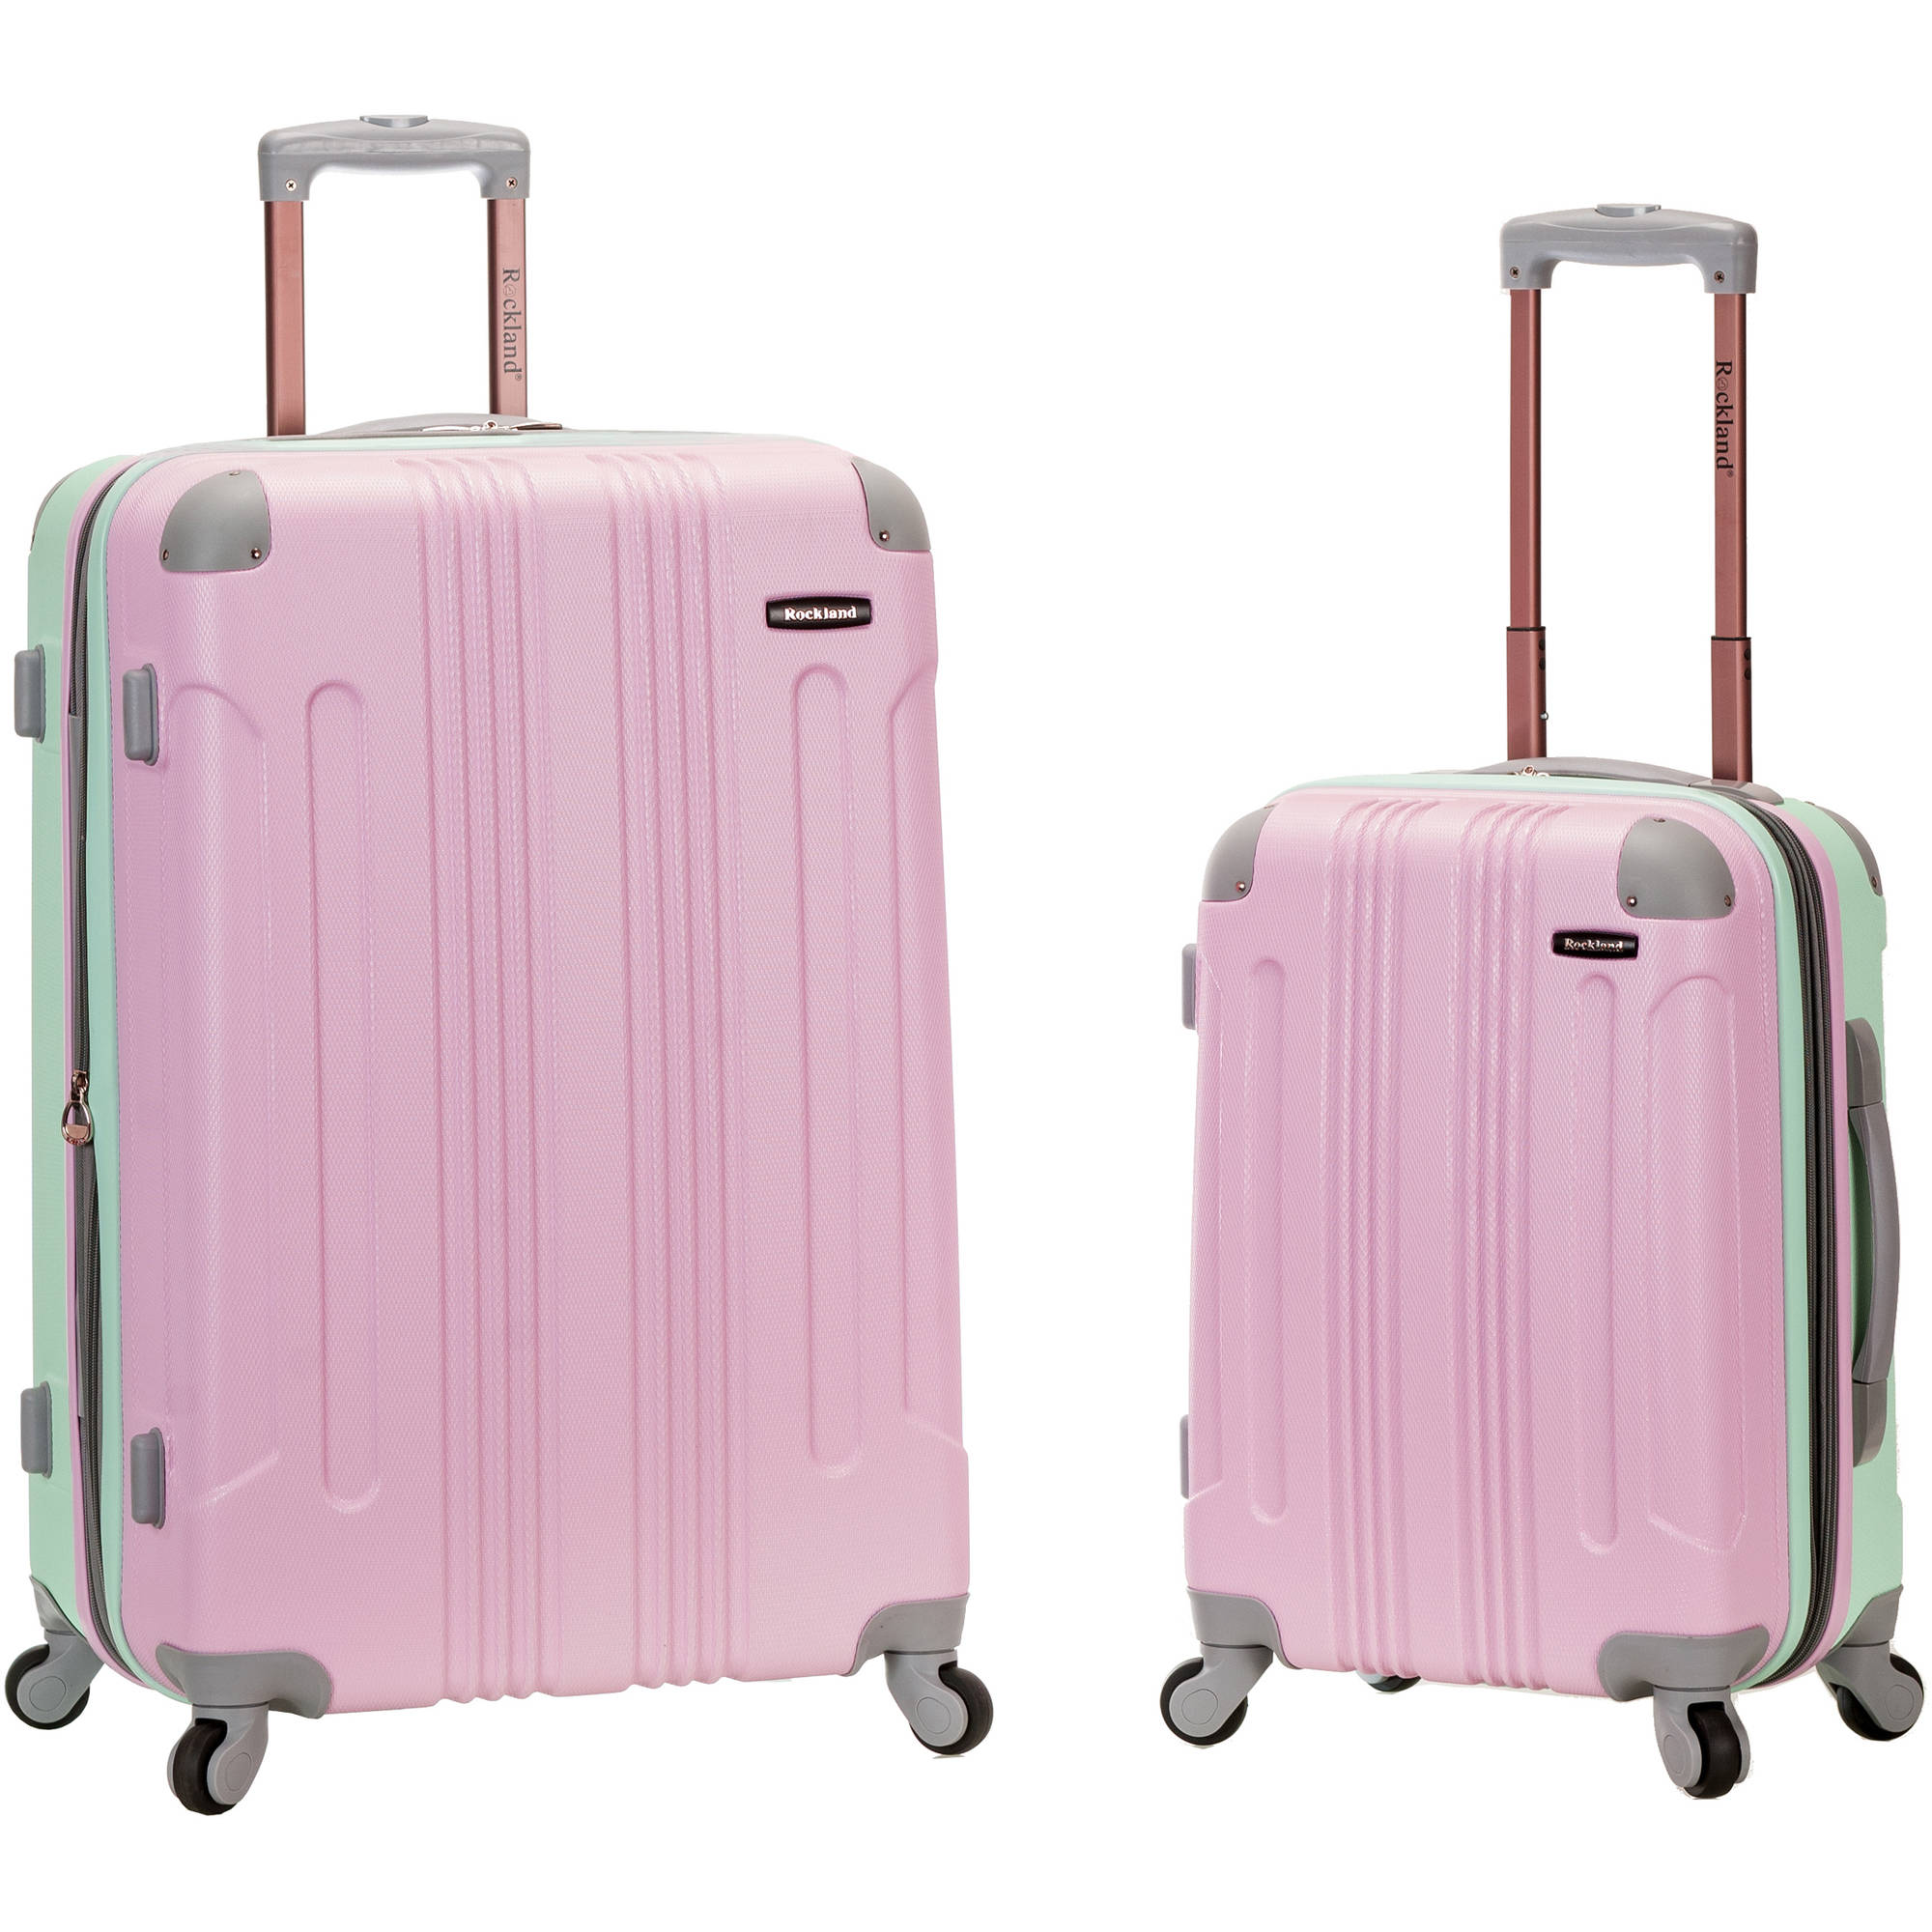 Rockland Melbourne 2-Piece Expandable ABS Spinner Luggage Set, Mint